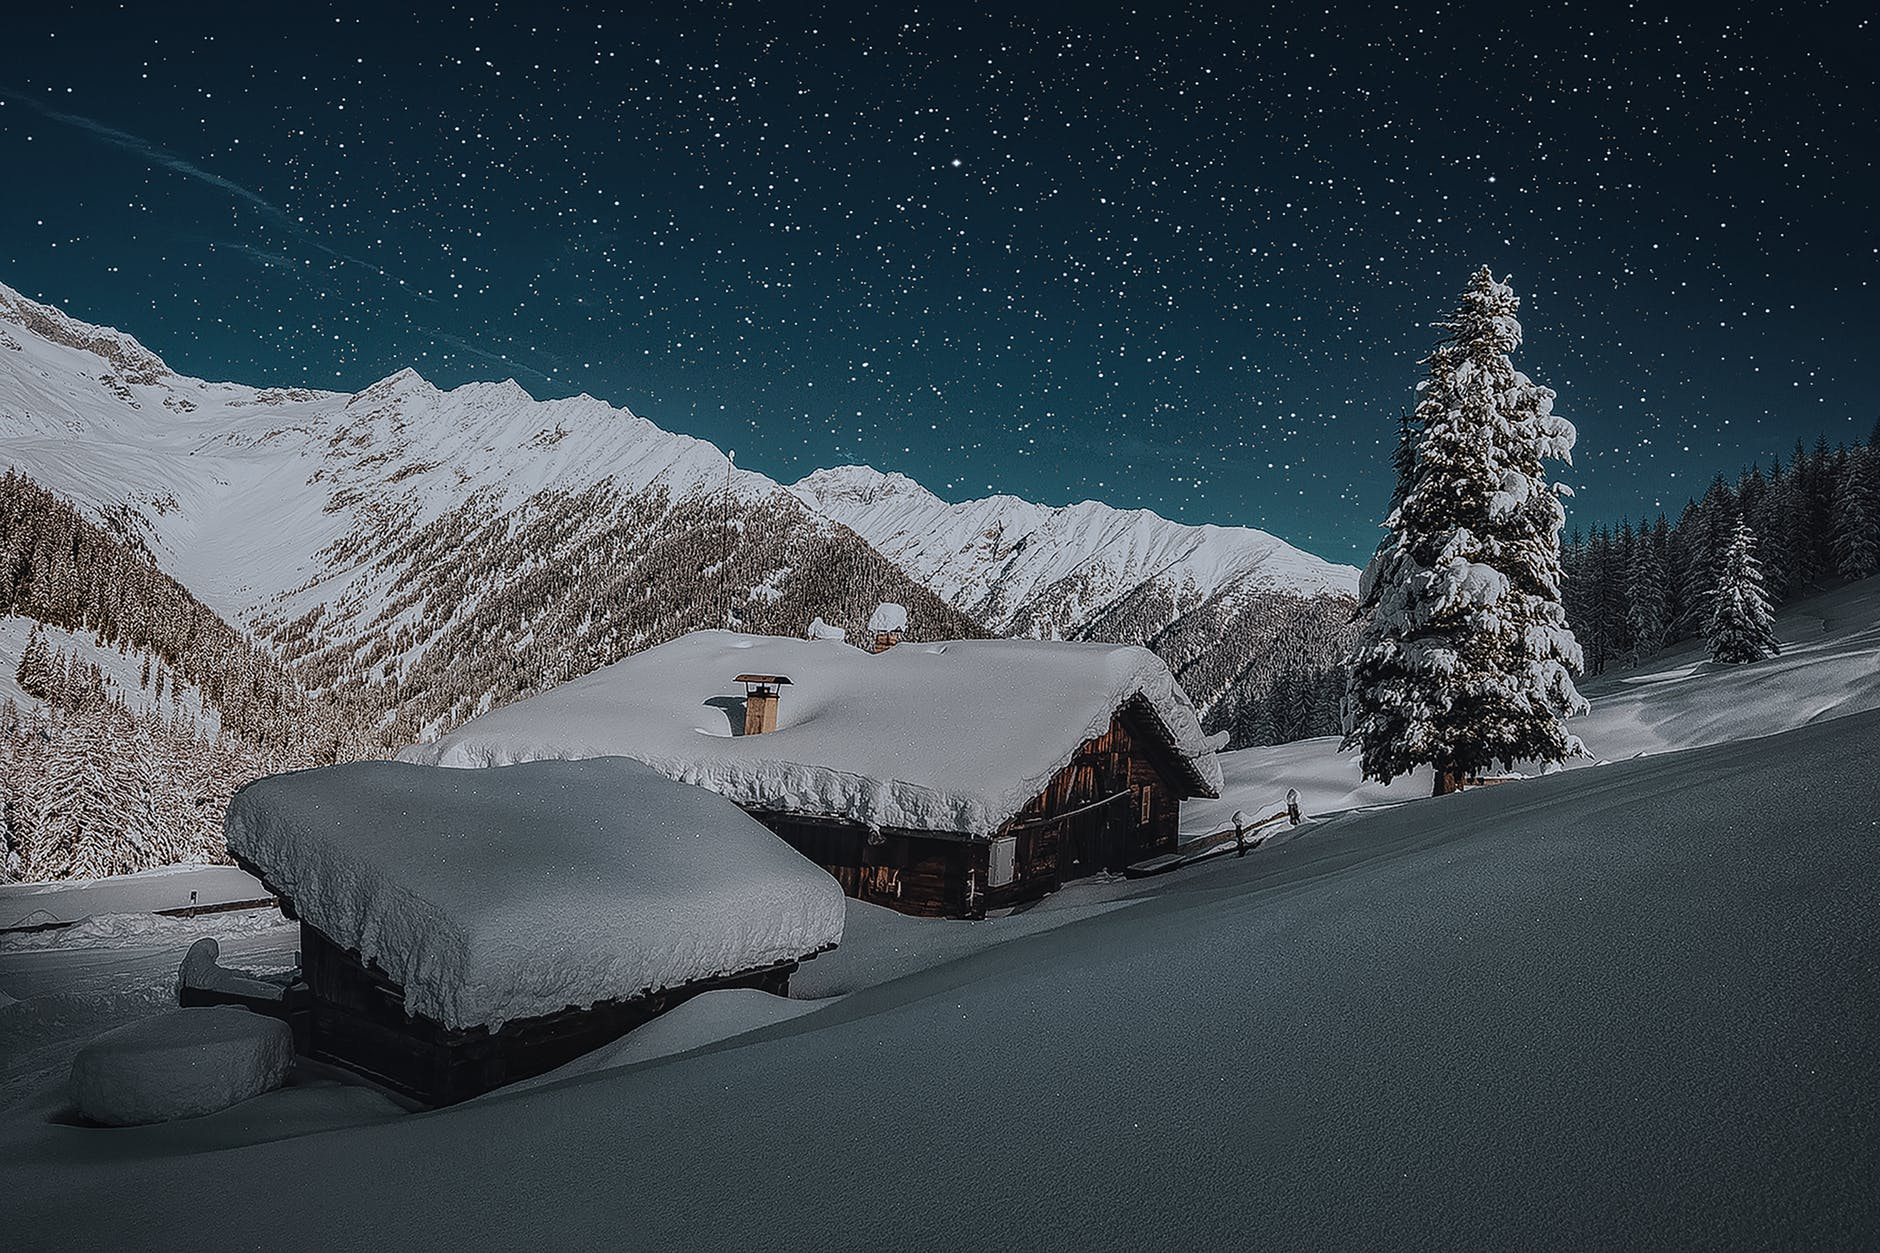 photo of ice coated house roofs beside green pine tree during snow night time